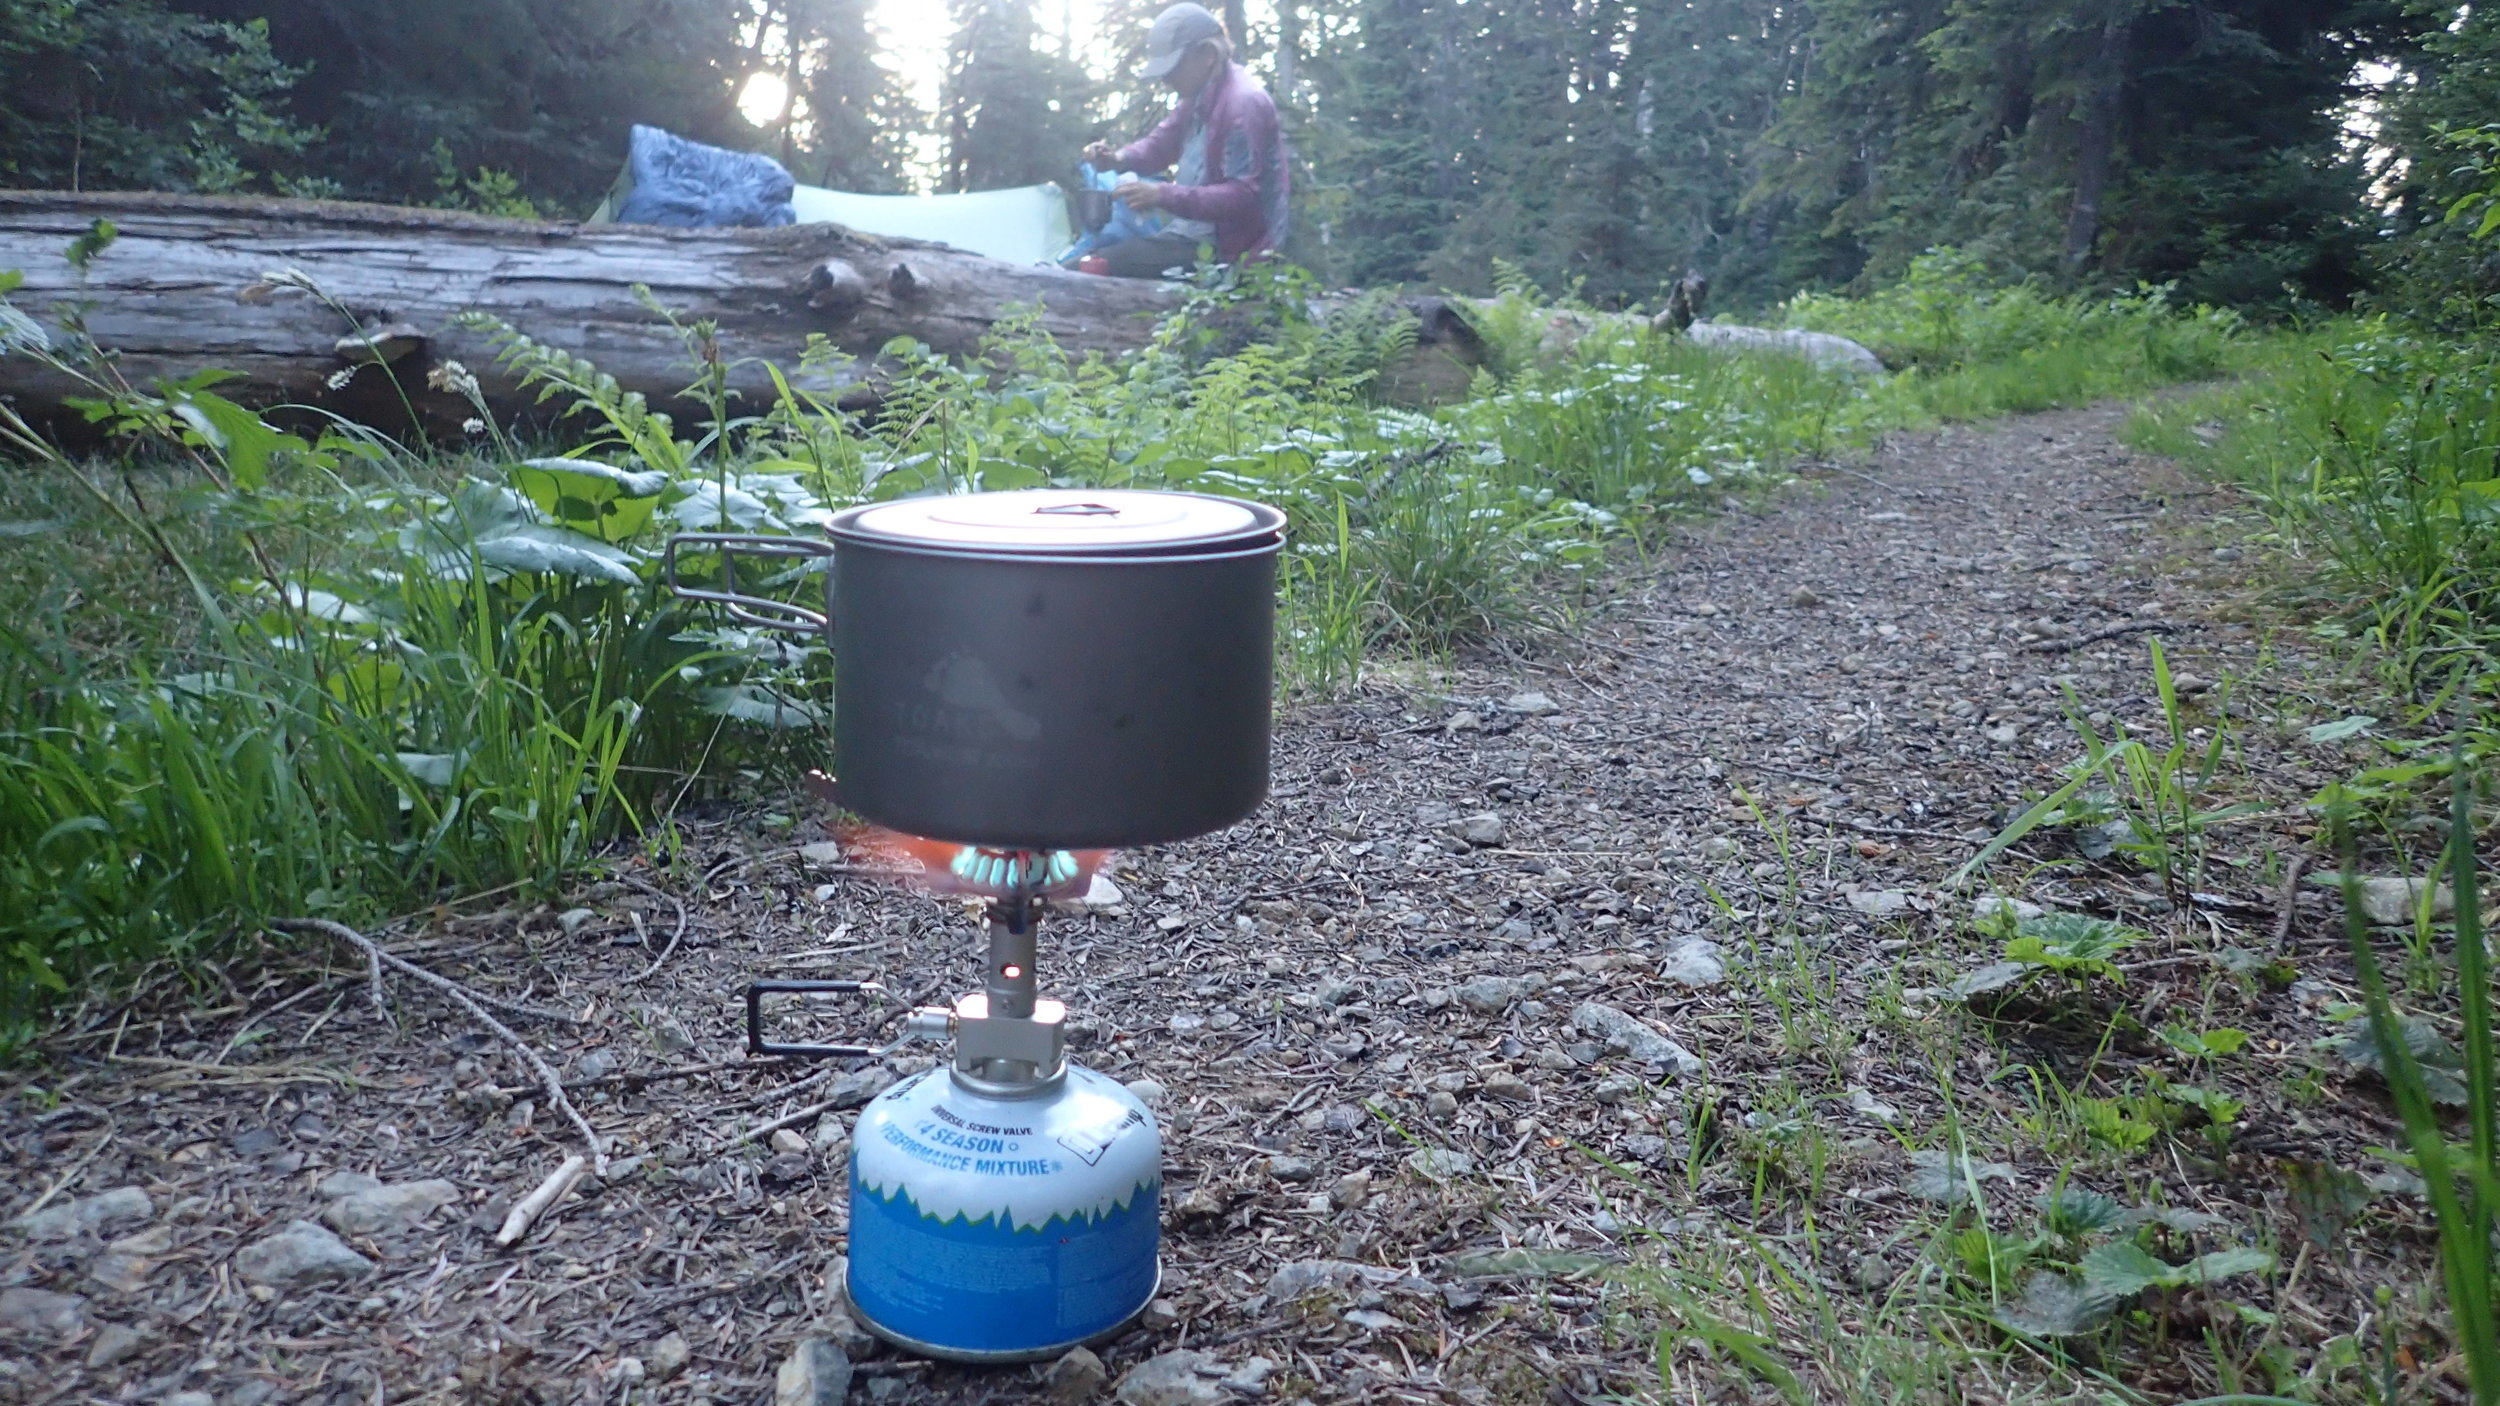 The Snow Peak LiteMax tested on a section of the Boundary Trail in the Pasayten Wilderness.   Photo courtesy Liz Thomas.